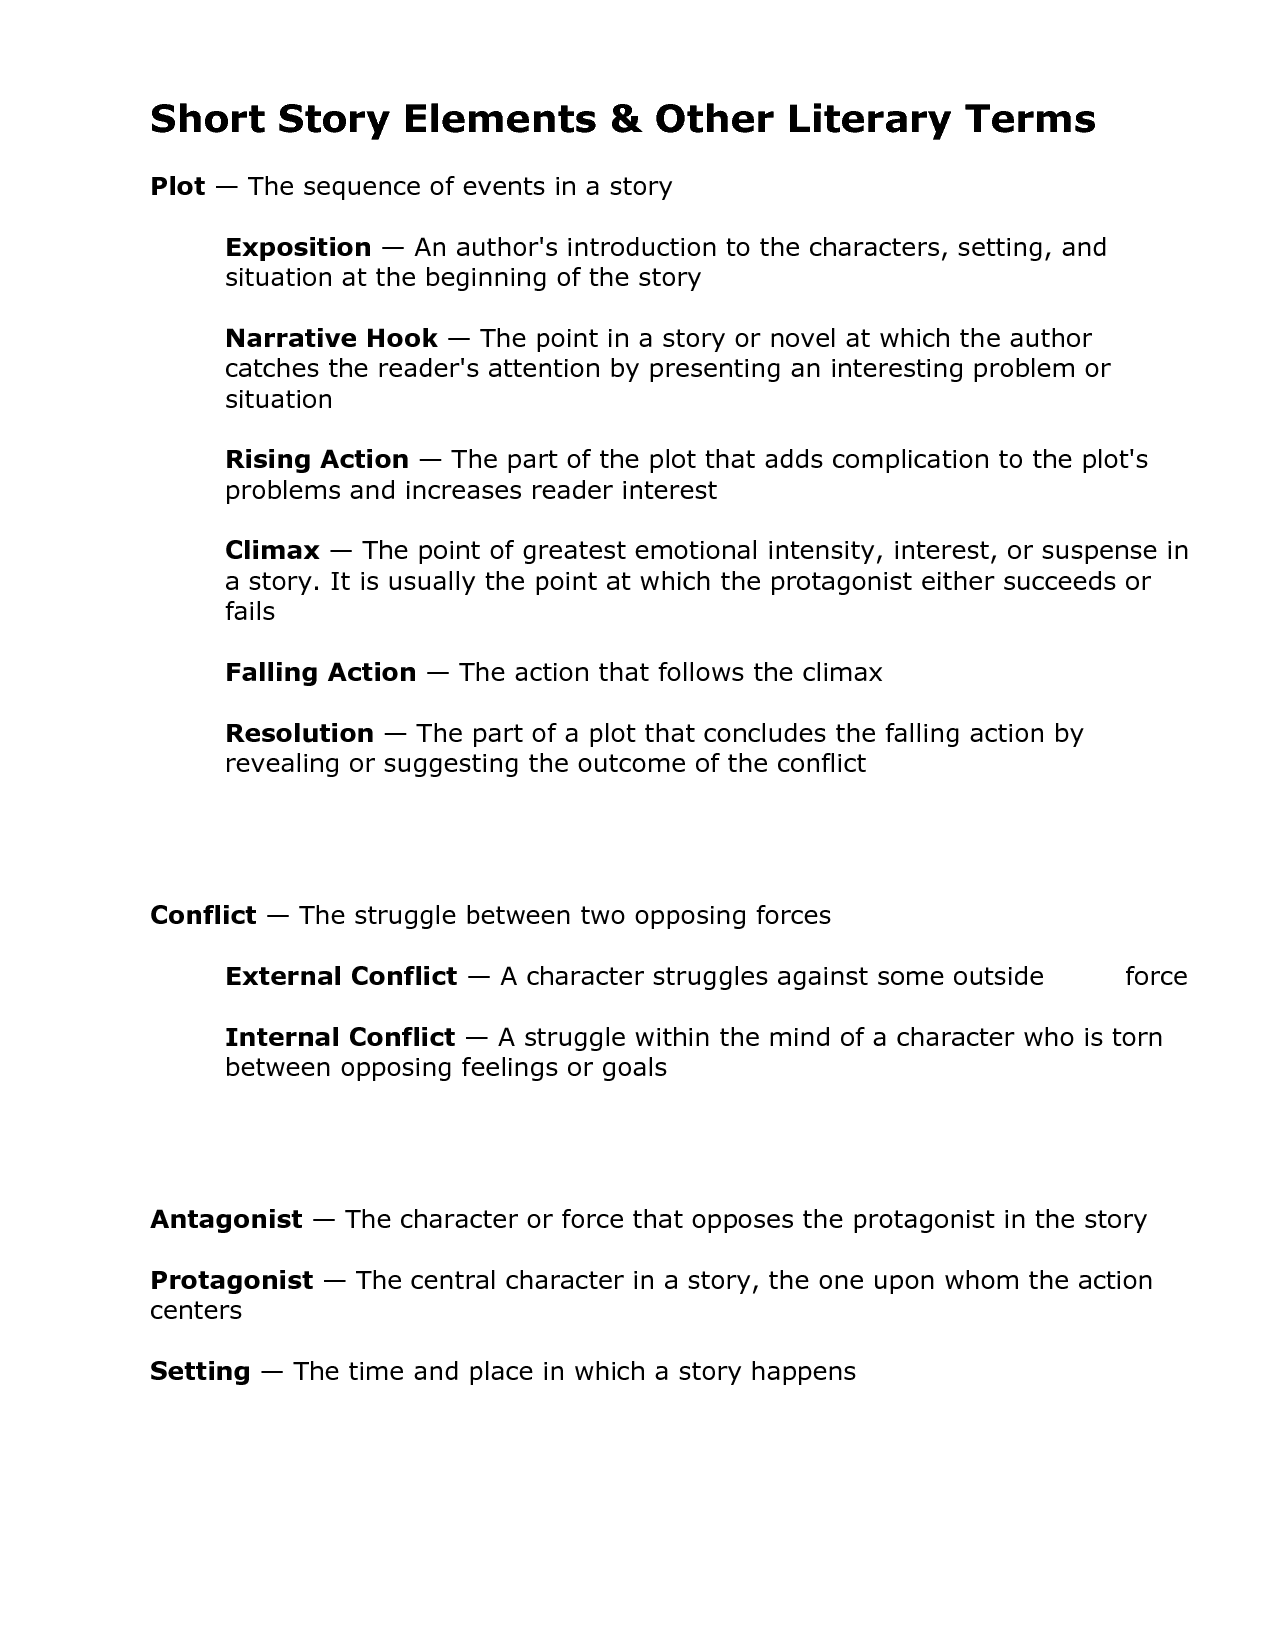 Short Story Elements Other Literary Terms   Literary terms [ 1650 x 1275 Pixel ]